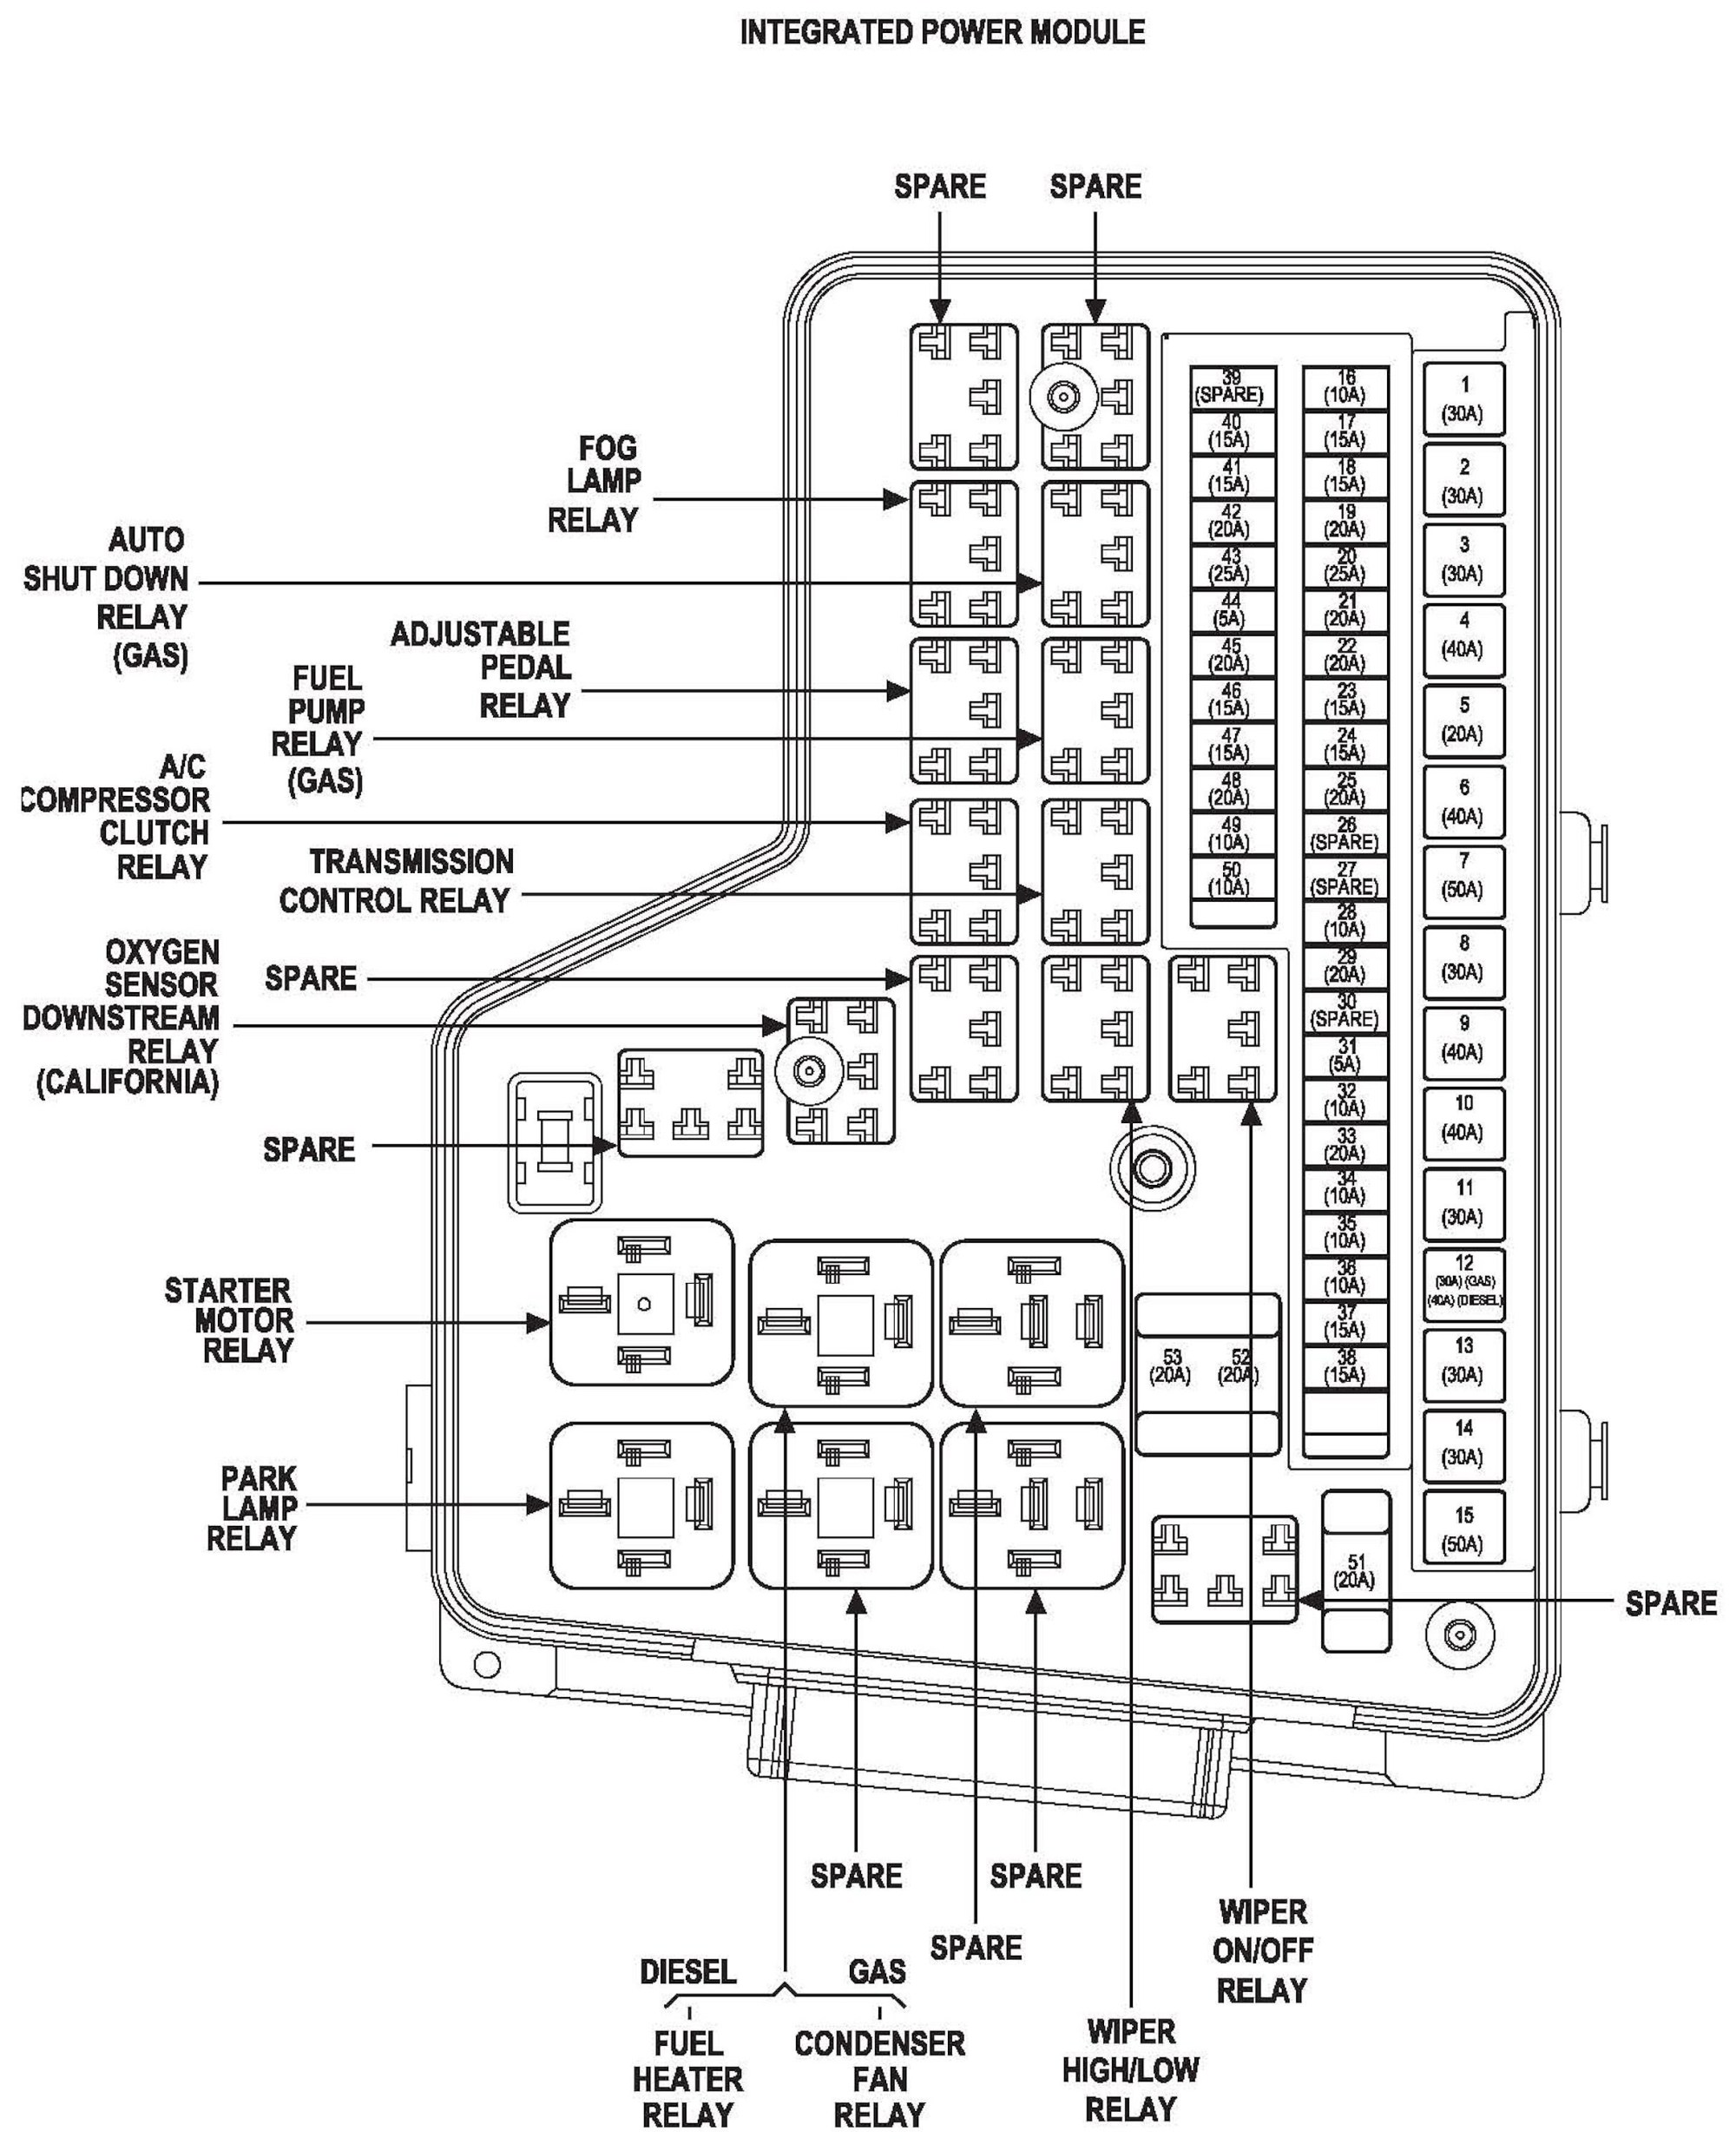 hight resolution of 02 dodge ram fuse box wiring diagram 2006 dodge ram 1500 fuse panel diagram dodge ram 1500 fuse panel diagram